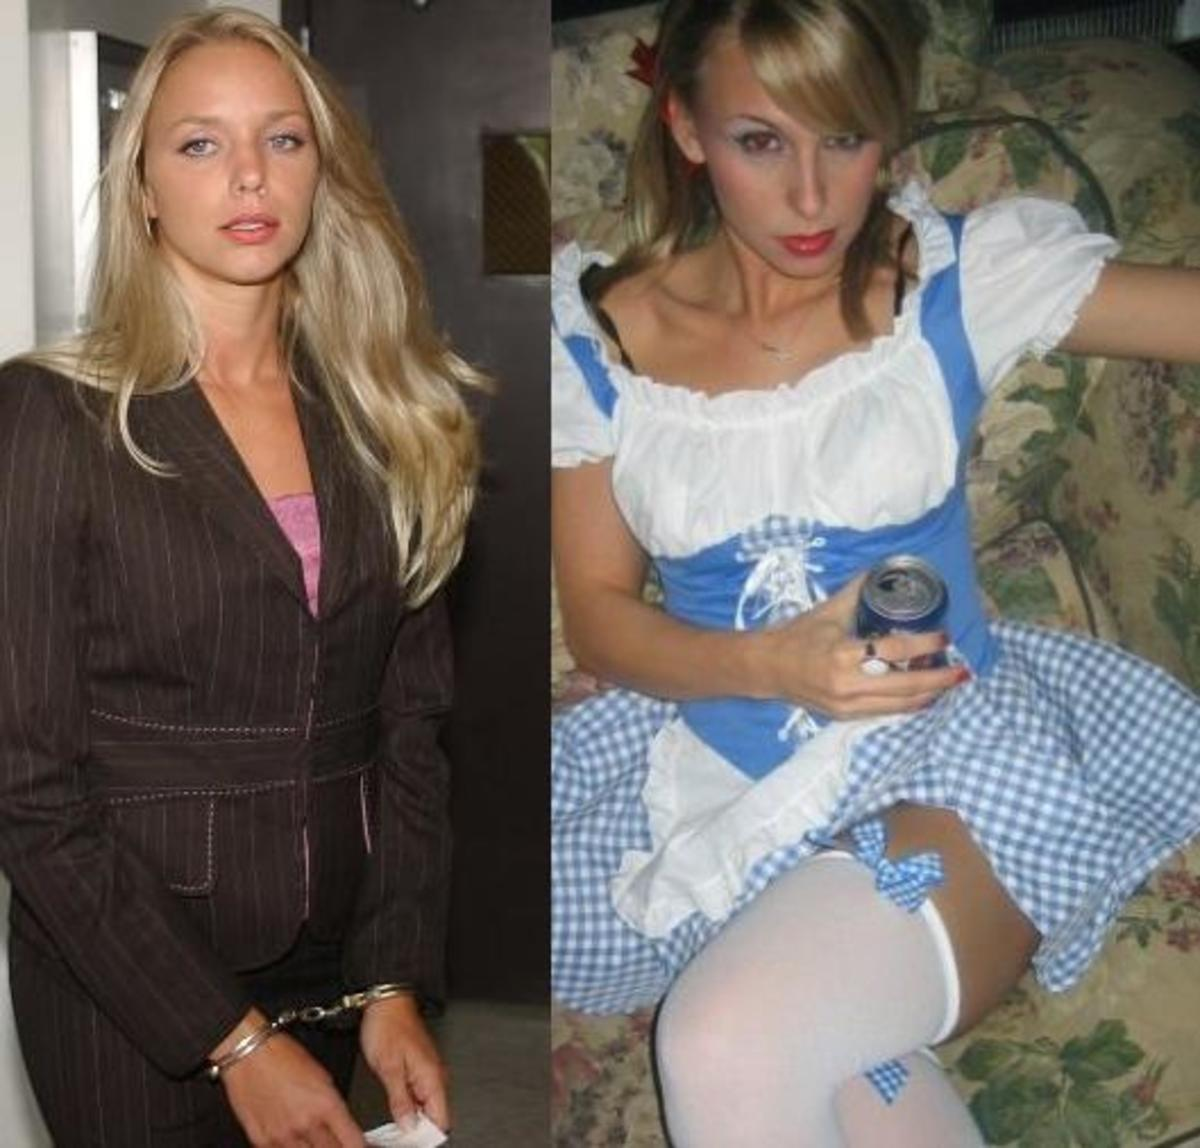 10 Sexiest Naughty Teachers: spiderbytes.hubpages.com/hub/10-Sexiest-Naughty-Teachers